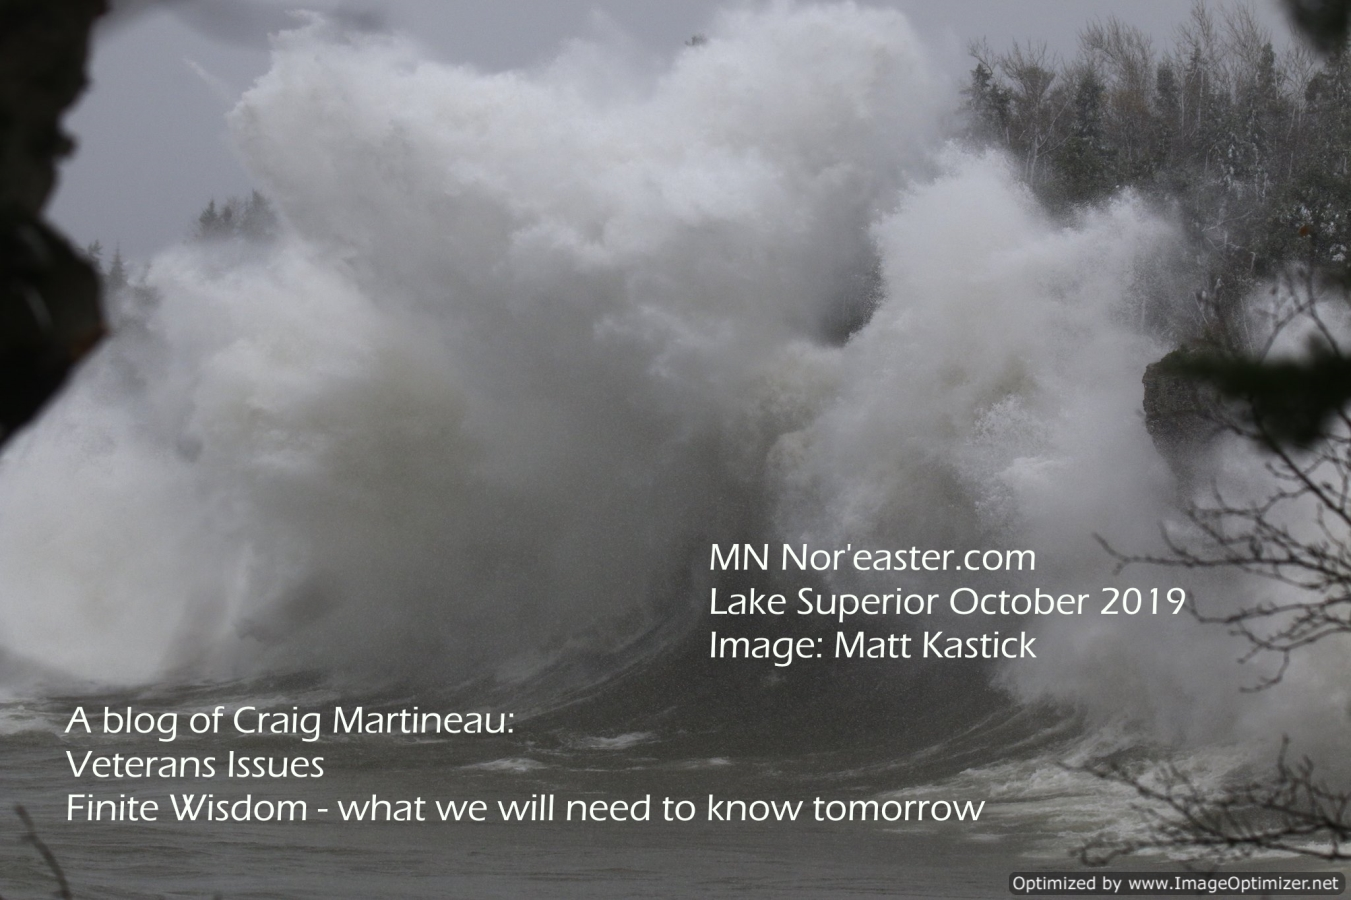 MN Noreaster.com